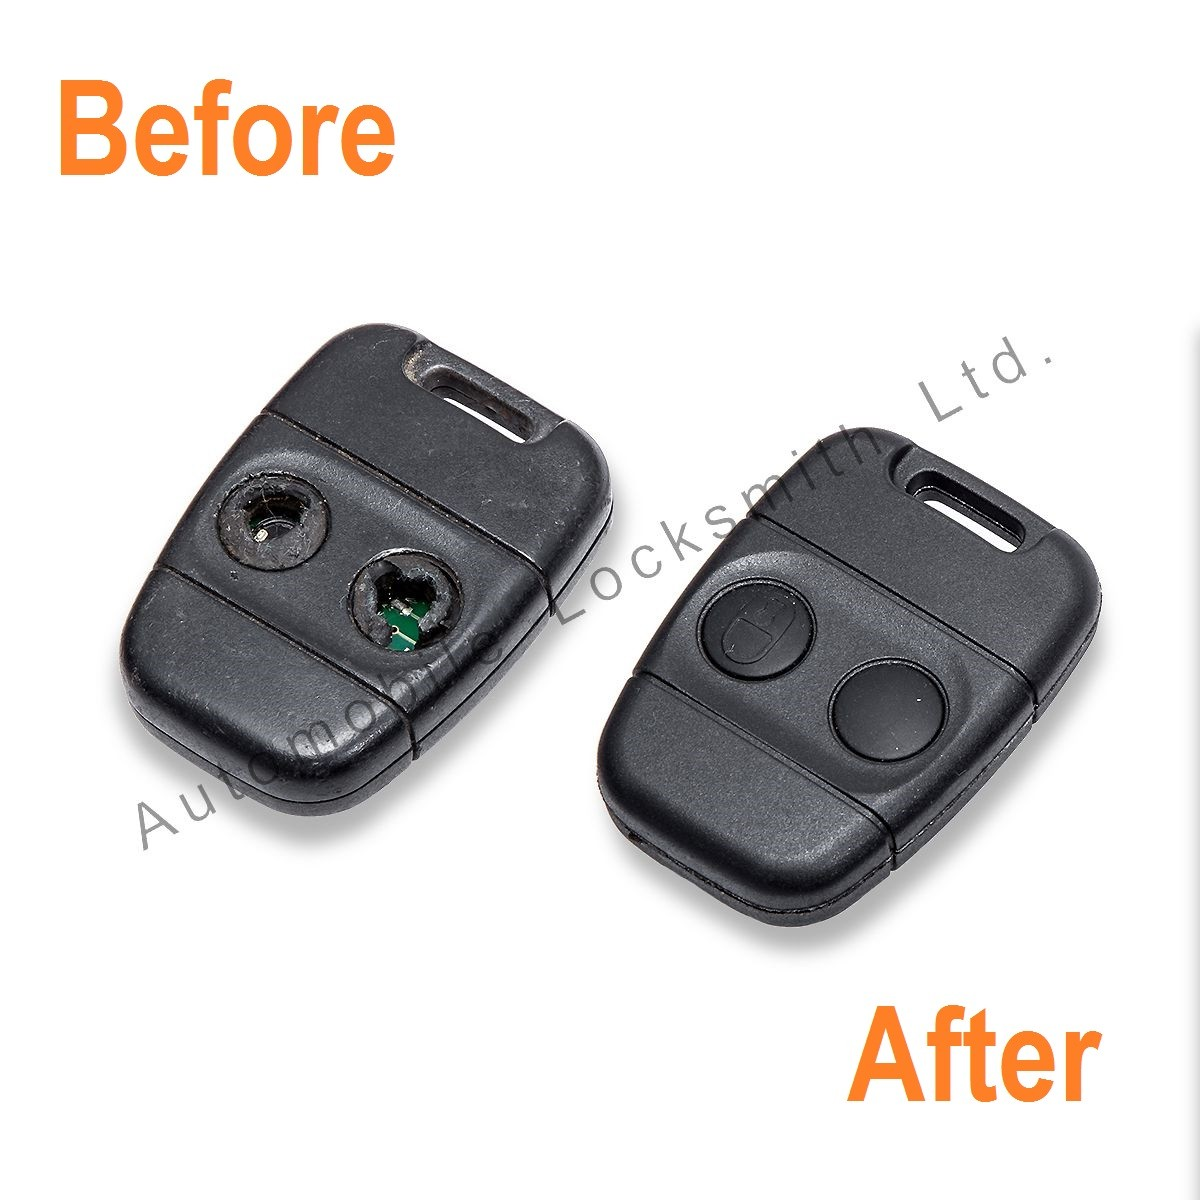 Repair Service for MG Land Rover 2 button remote alarm key